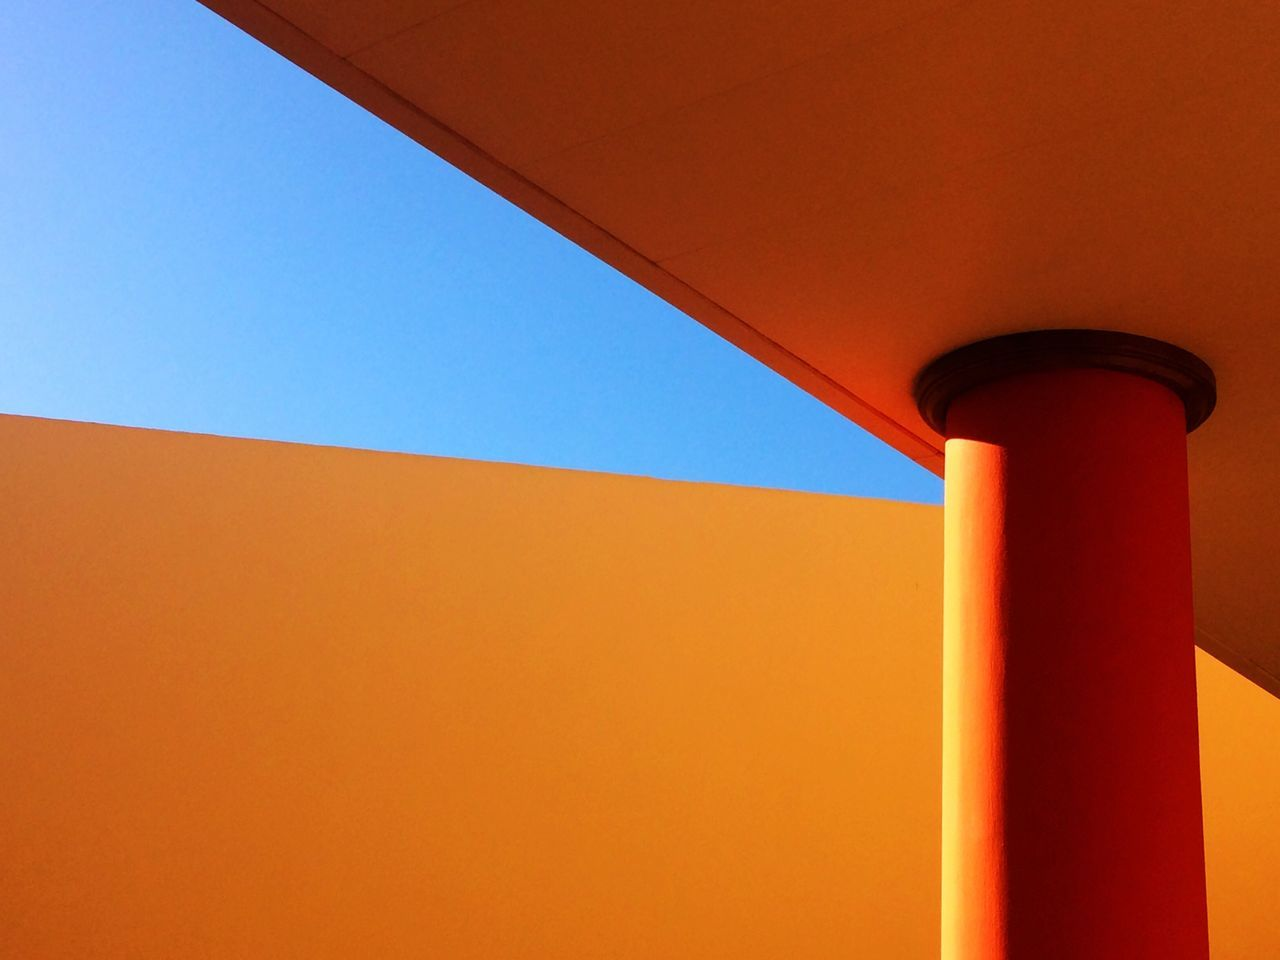 Minimalist Architecture Red Architecture built structure orange color Clear sky blue Sunlight building exterior hotel SPAIN Fuerteventura Colors colorful Architecture building Architecture_collection design architectural detail minimalism Fine Art Photography shootermag eye4photography The City Light EyeEm Best Shots